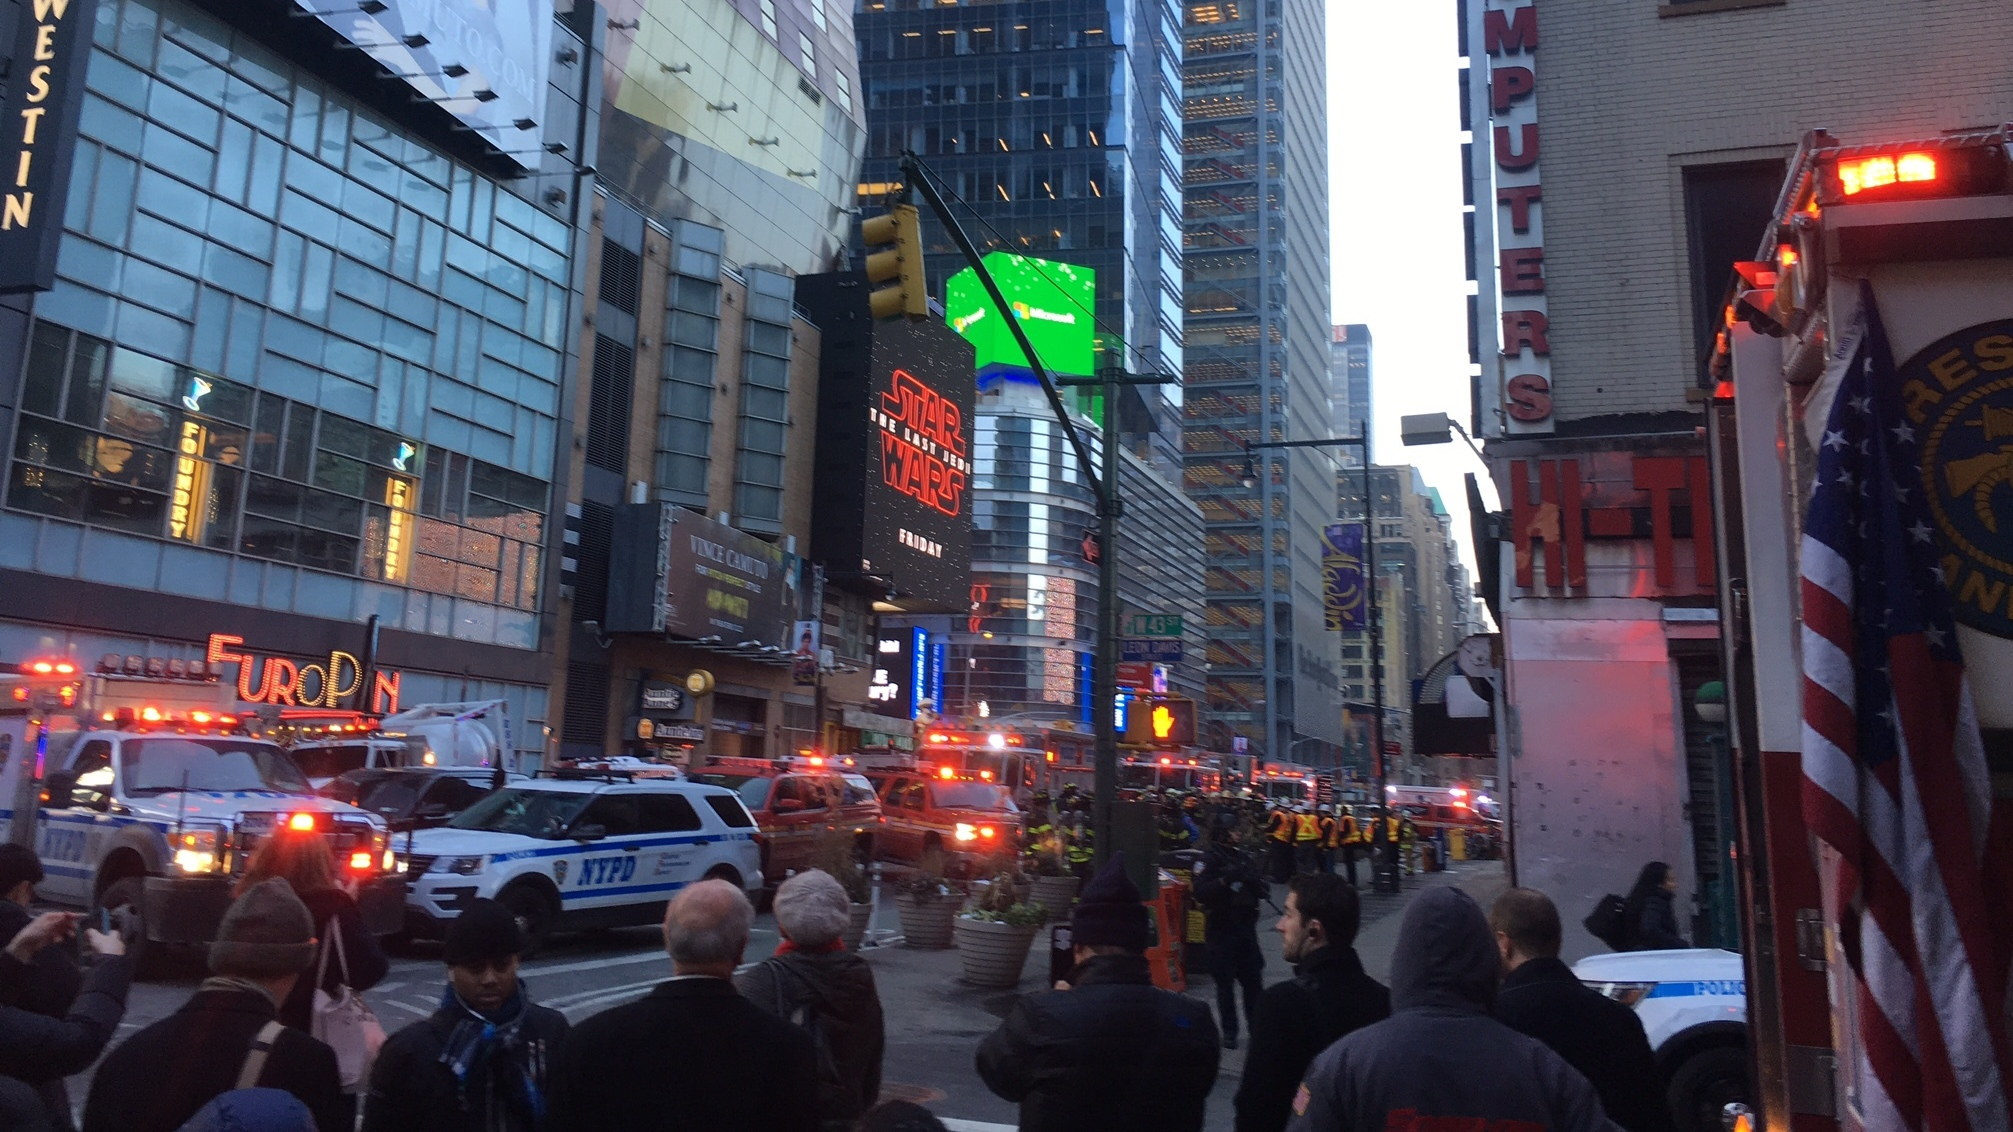 Who Is Akayed Ullah? Times Square Explosion Suspect Identified